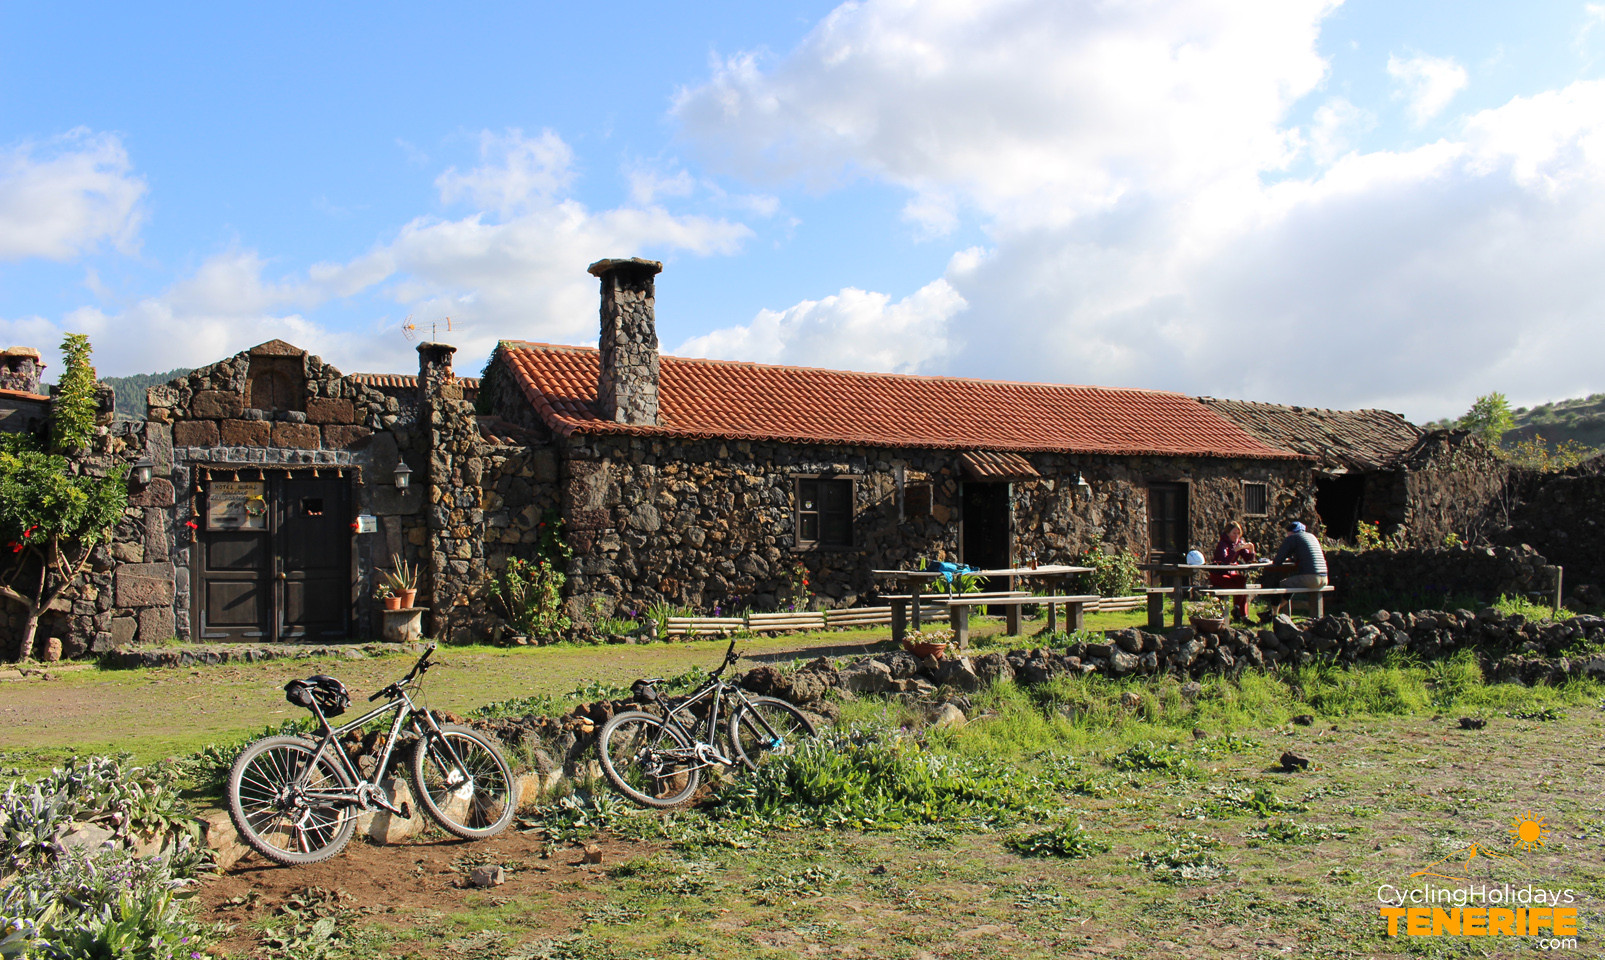 Copia de bike excursion tenerife.jpg